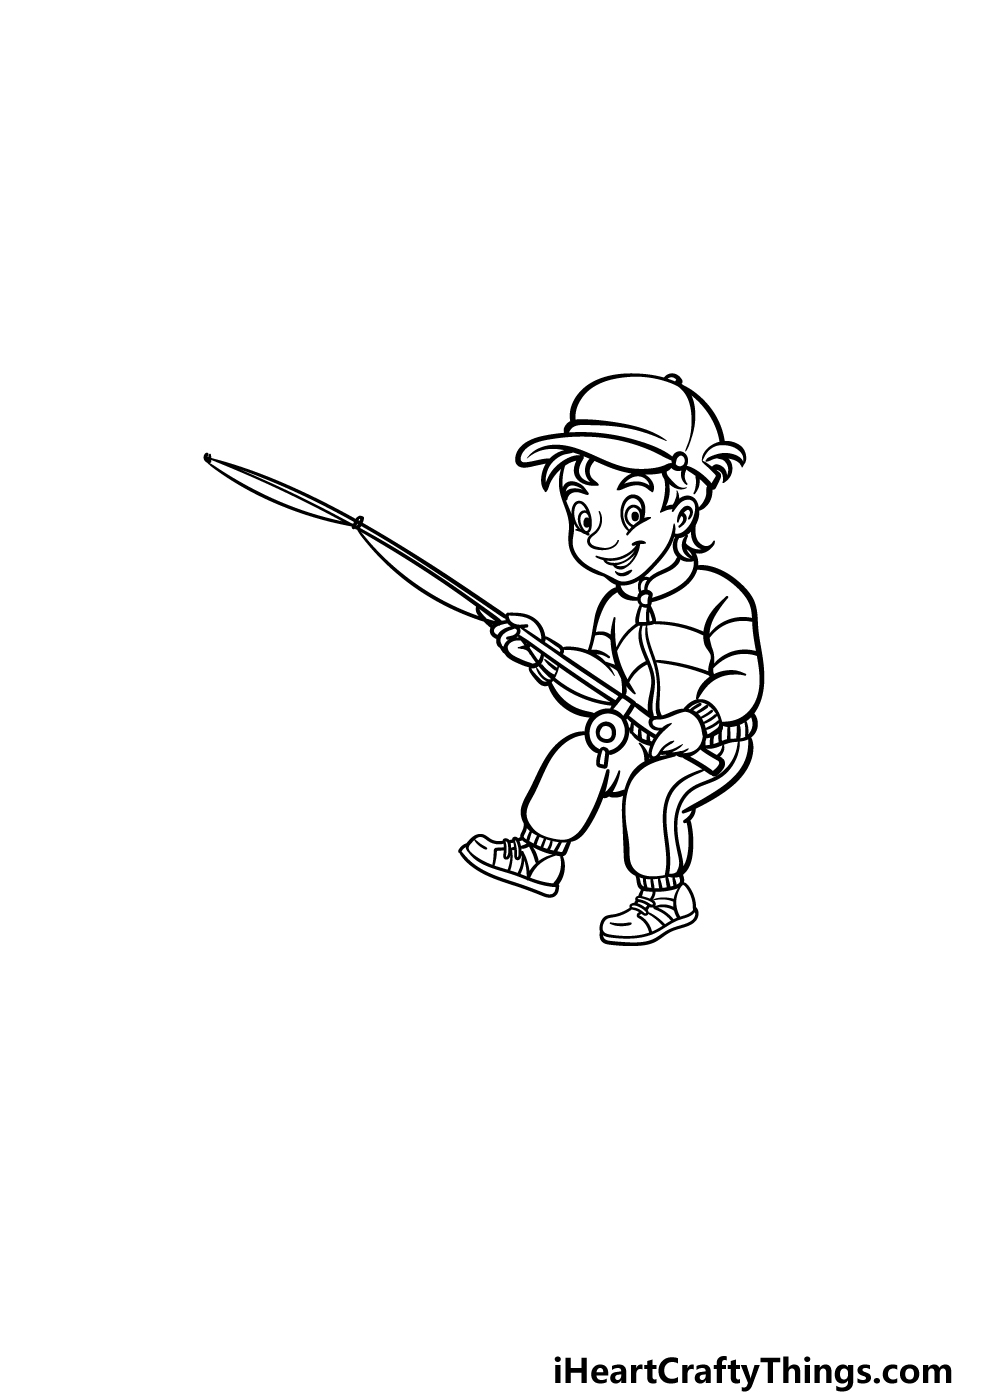 how to draw fishing step 3